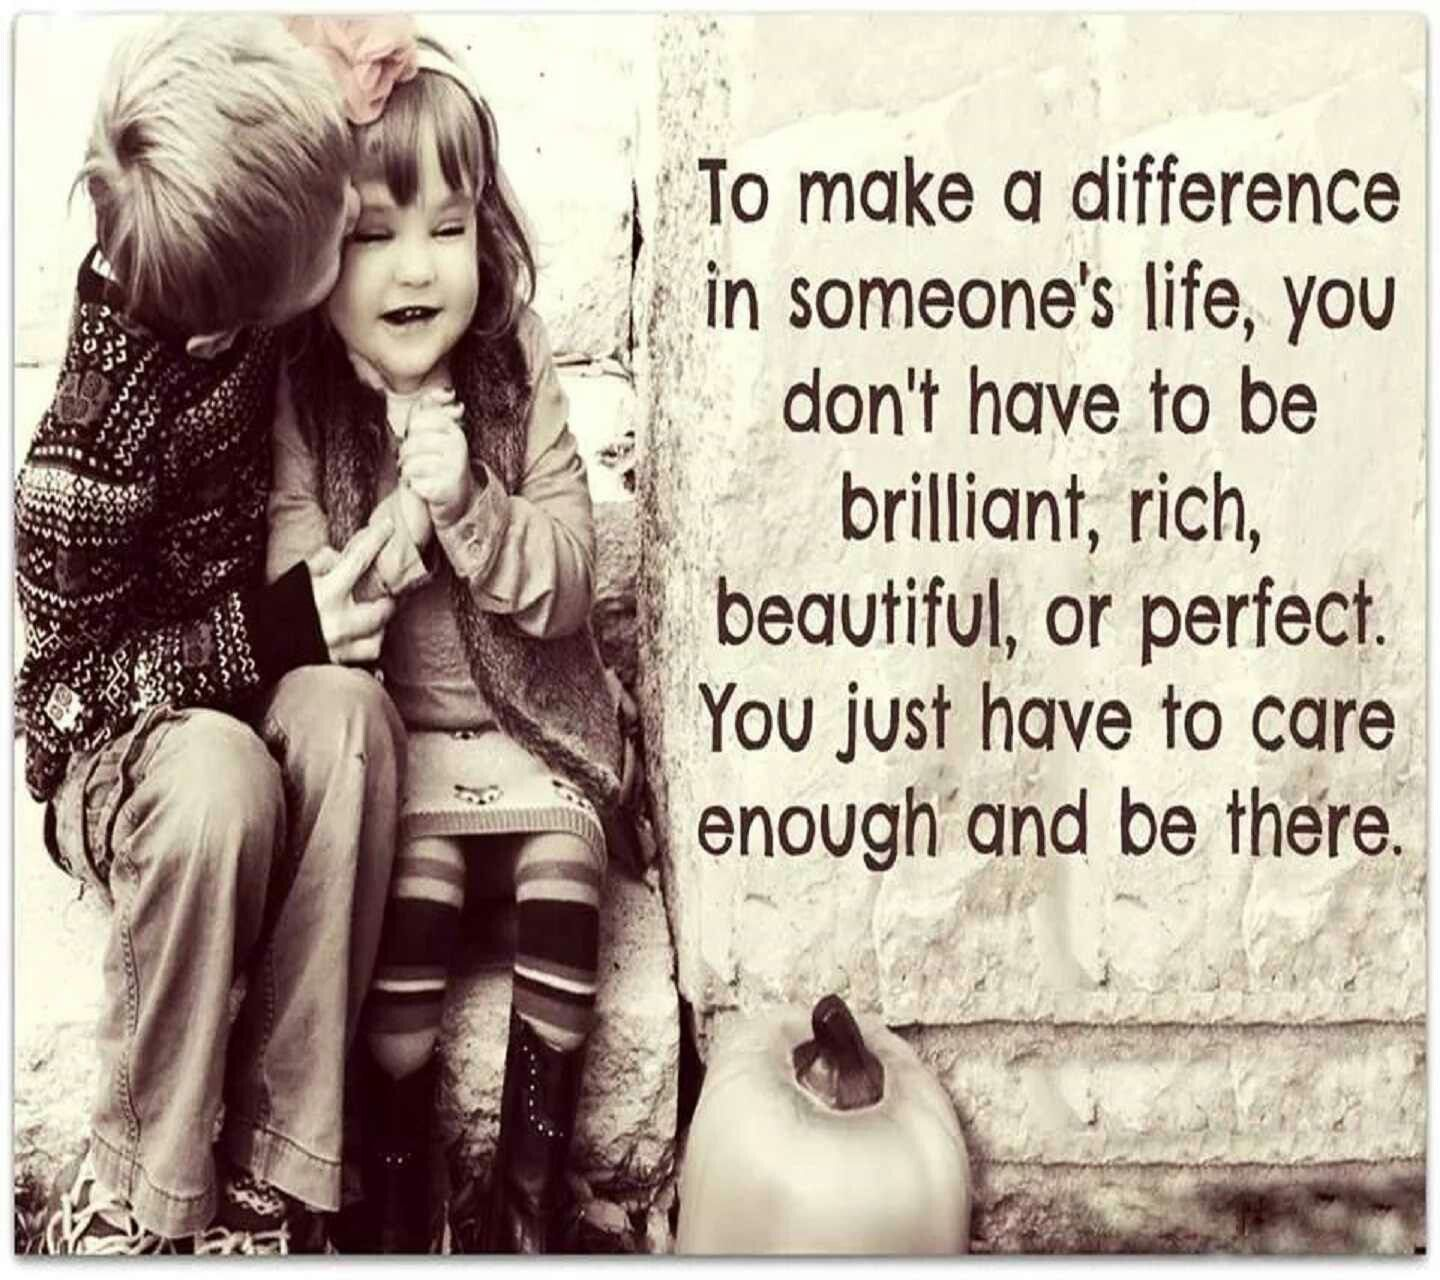 Inspirational Quotes About Loving Children Pinkrissy Liska On Quotes  Pinterest  Quotes Children And